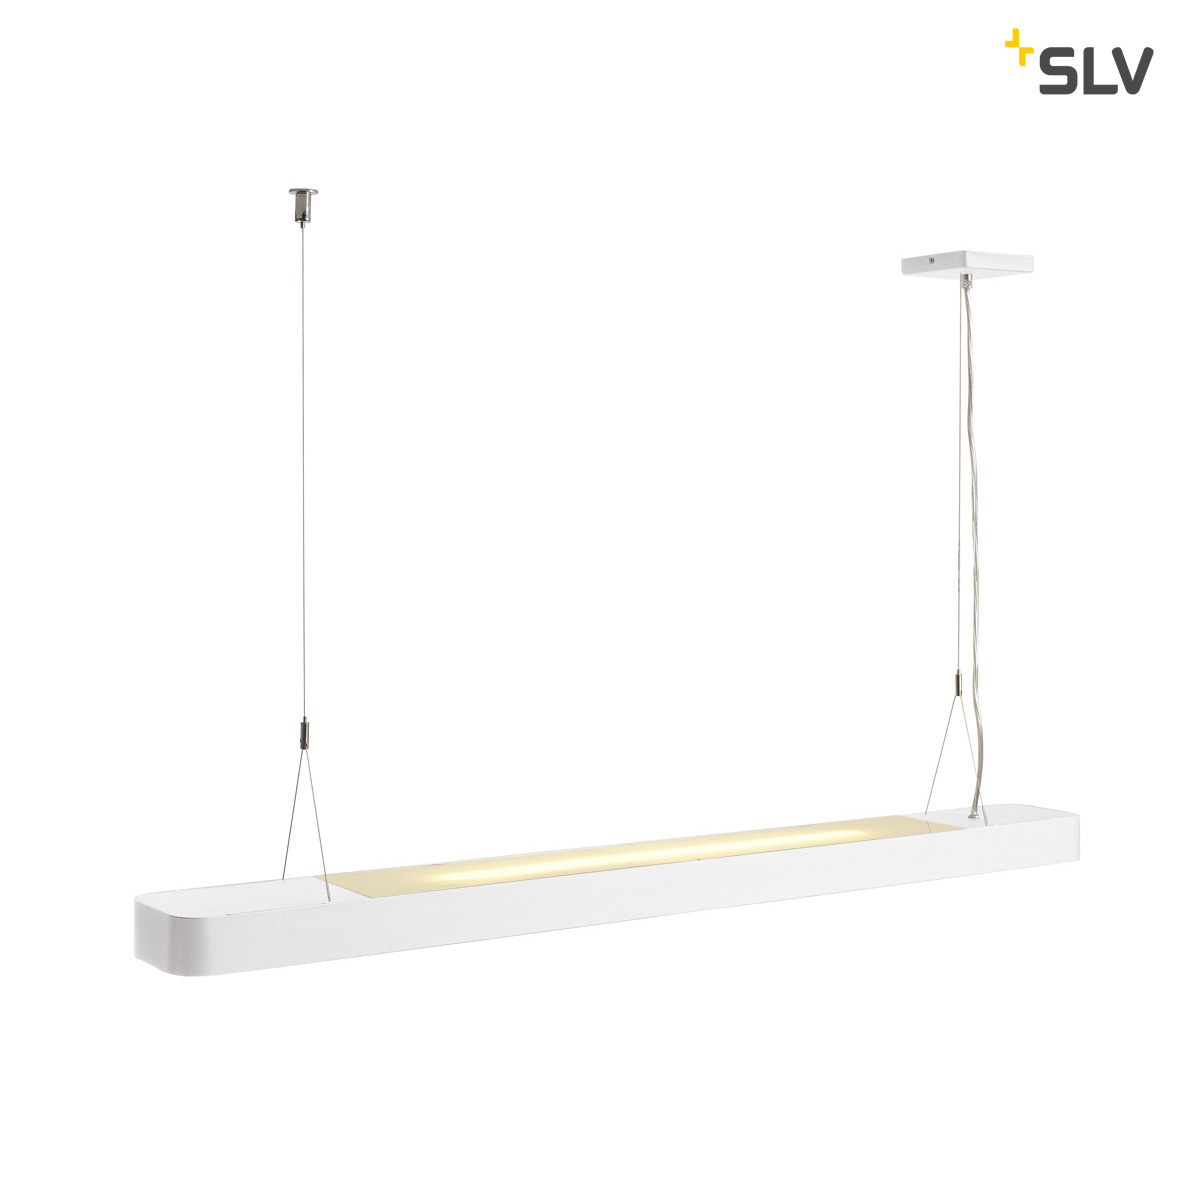 SLV WORKLIGHT LED pendel wit